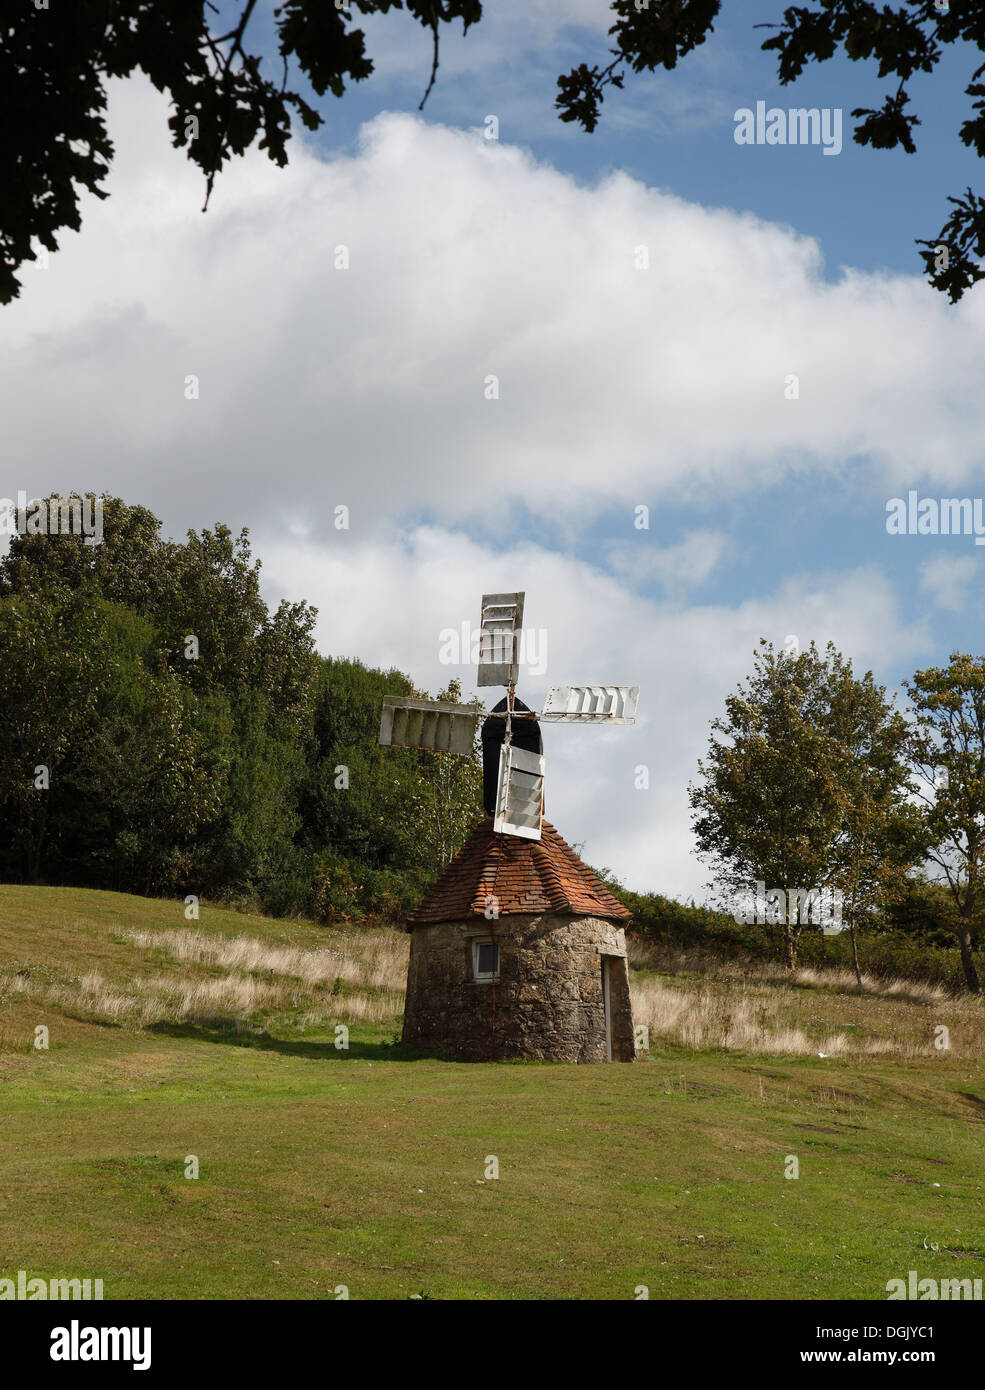 Model windmill on round building Isle of Wight, Hampshire, England - Stock Image